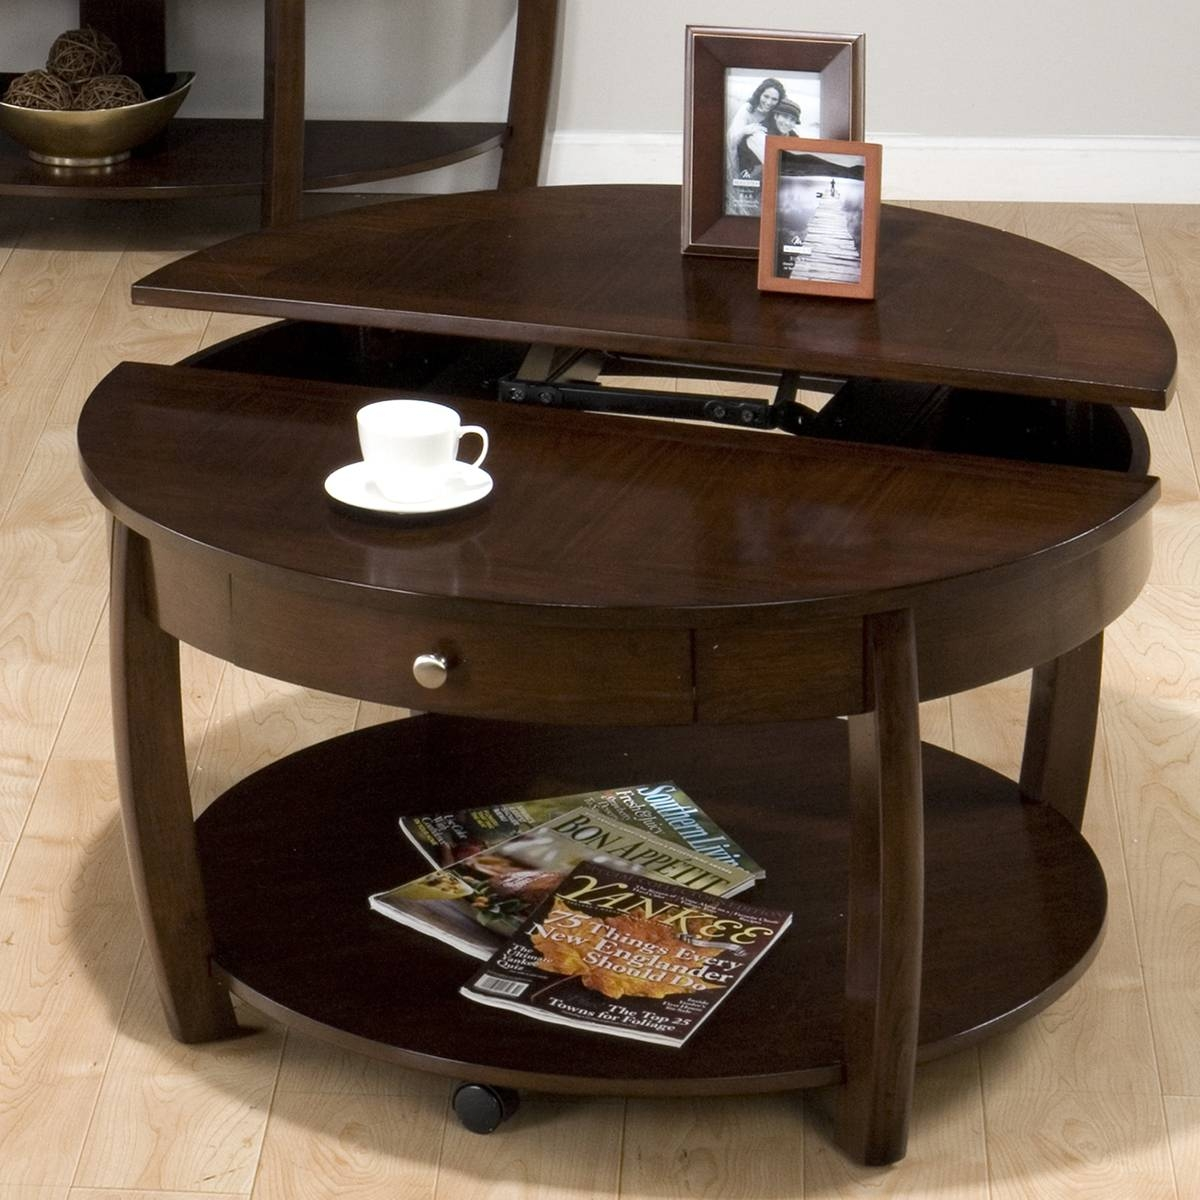 Round Glass Coffee Table With Storage | Coffee Tables Decoration with Round Coffee Tables With Storages (Image 27 of 30)